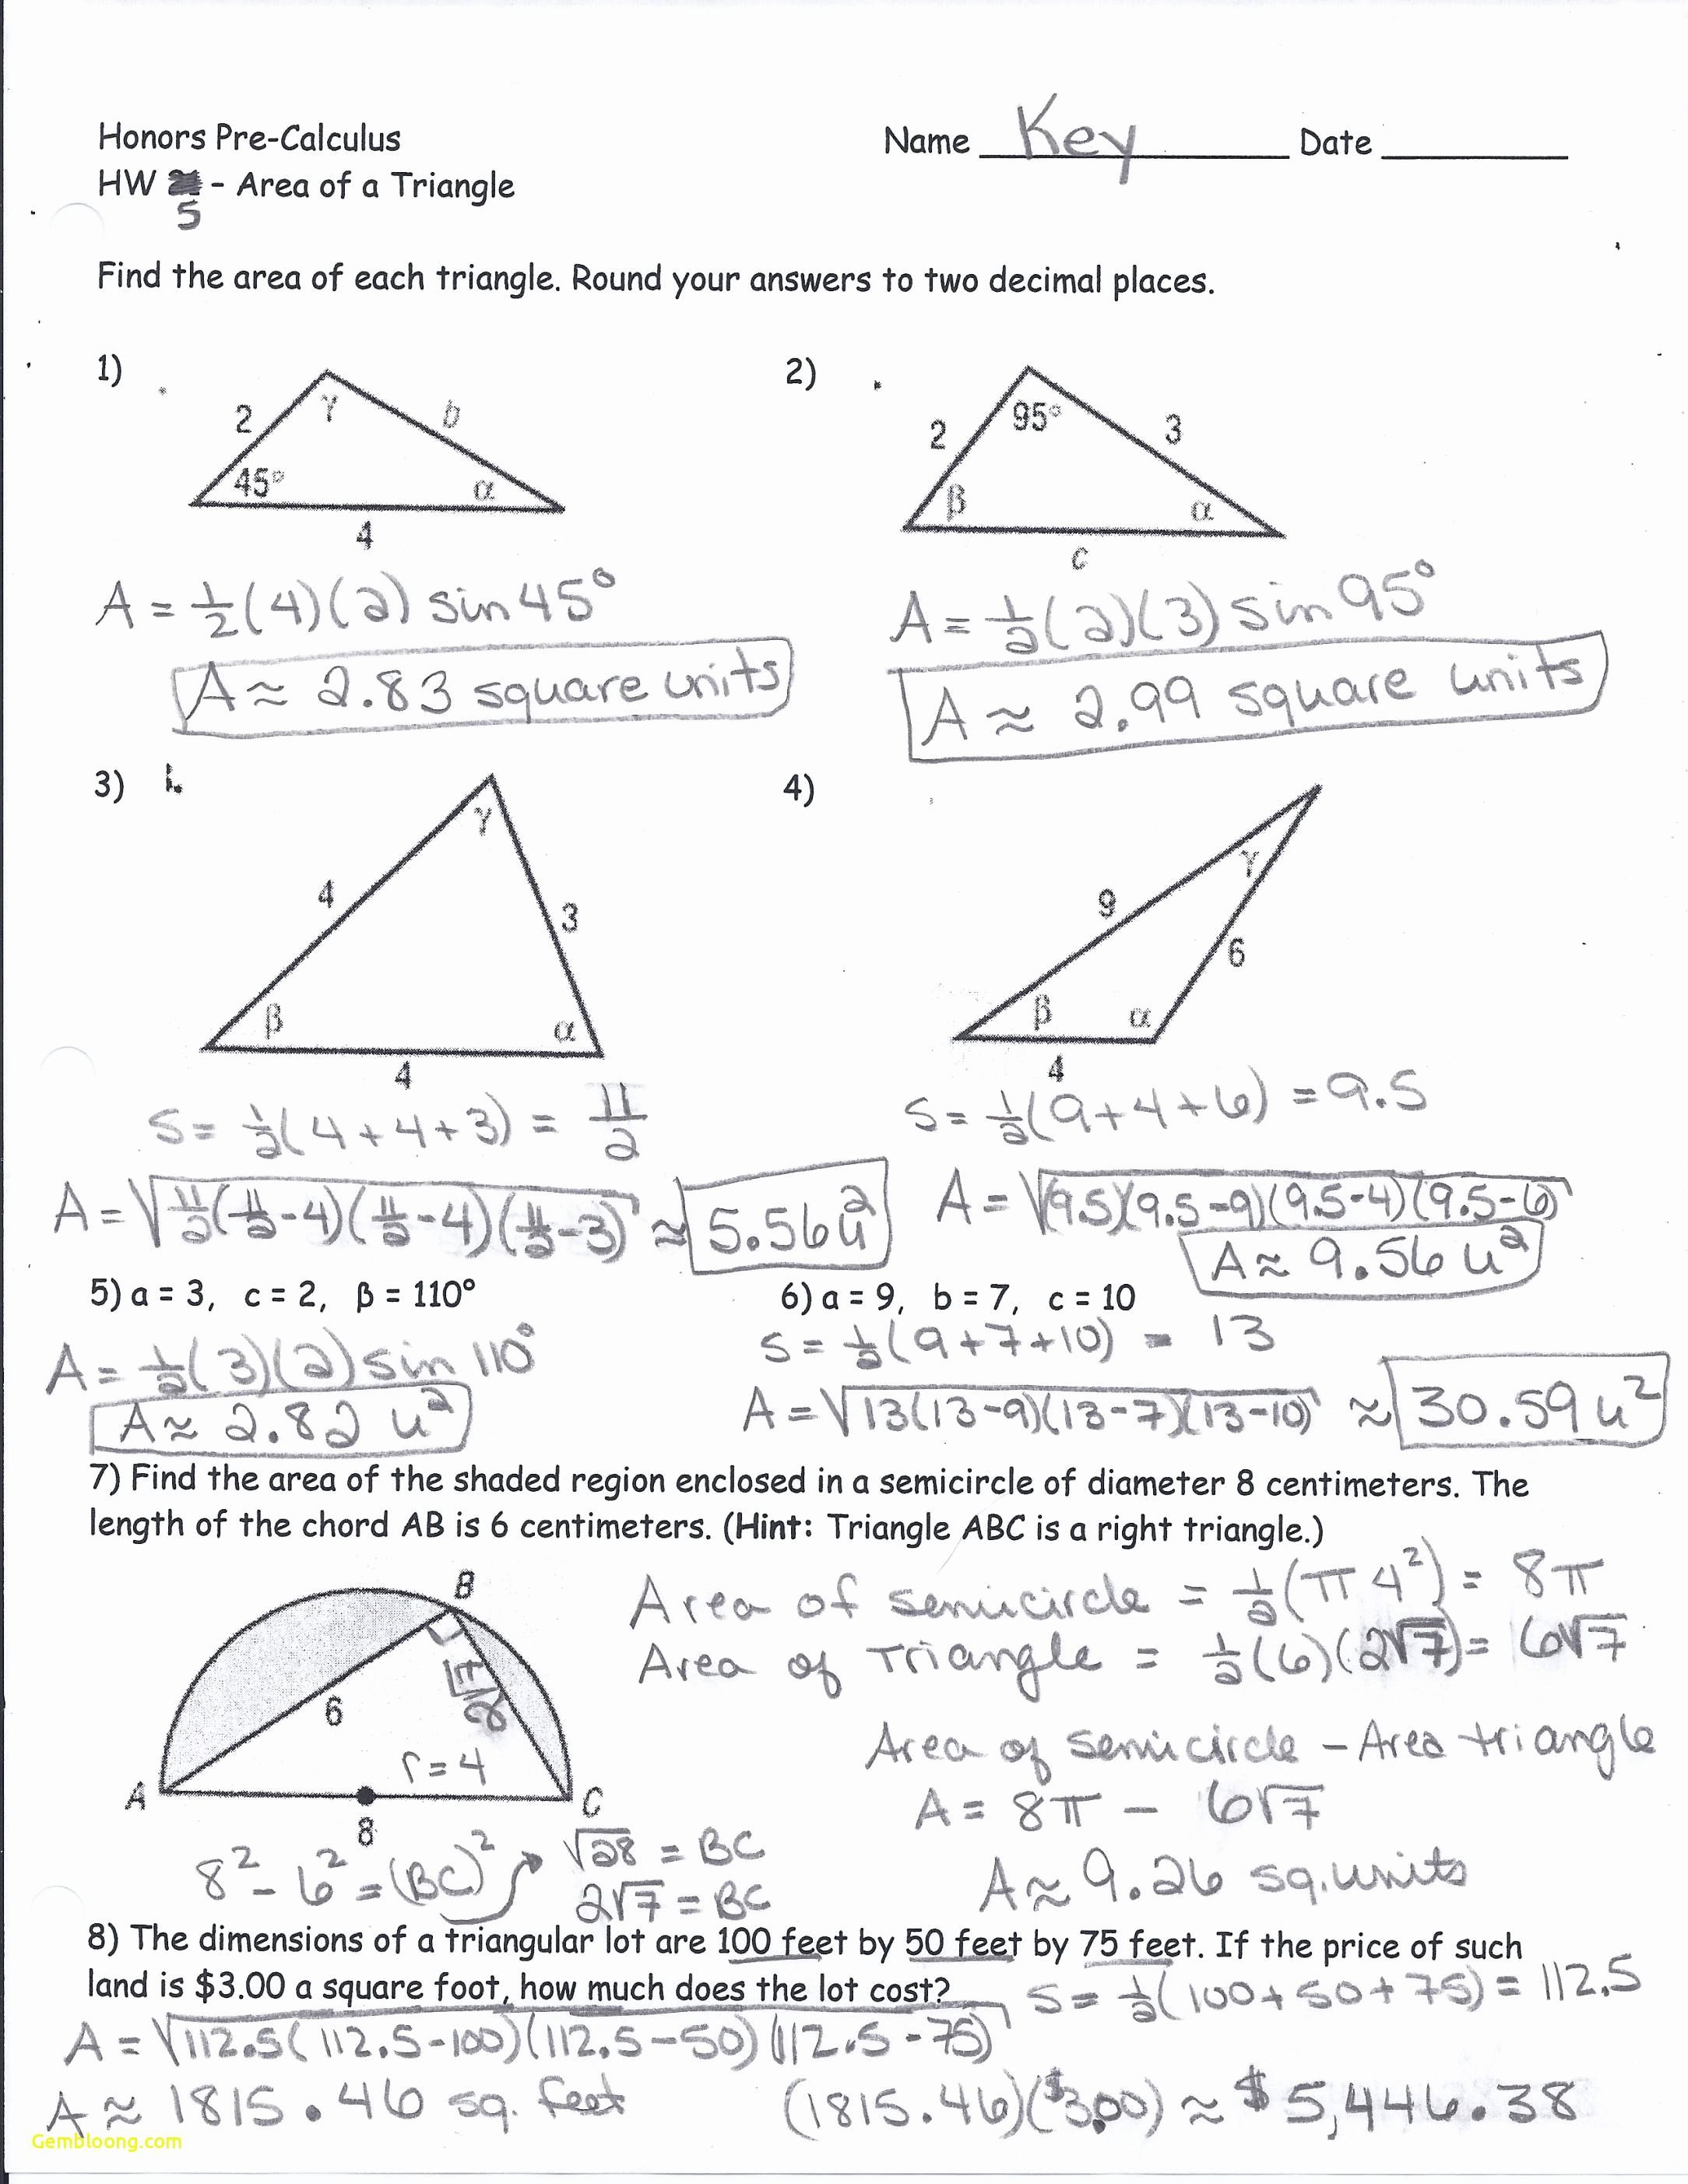 Triangle Congruence Worksheet Answers Luxury Triangle Congruence Worksheet Answers Cramerforcongress